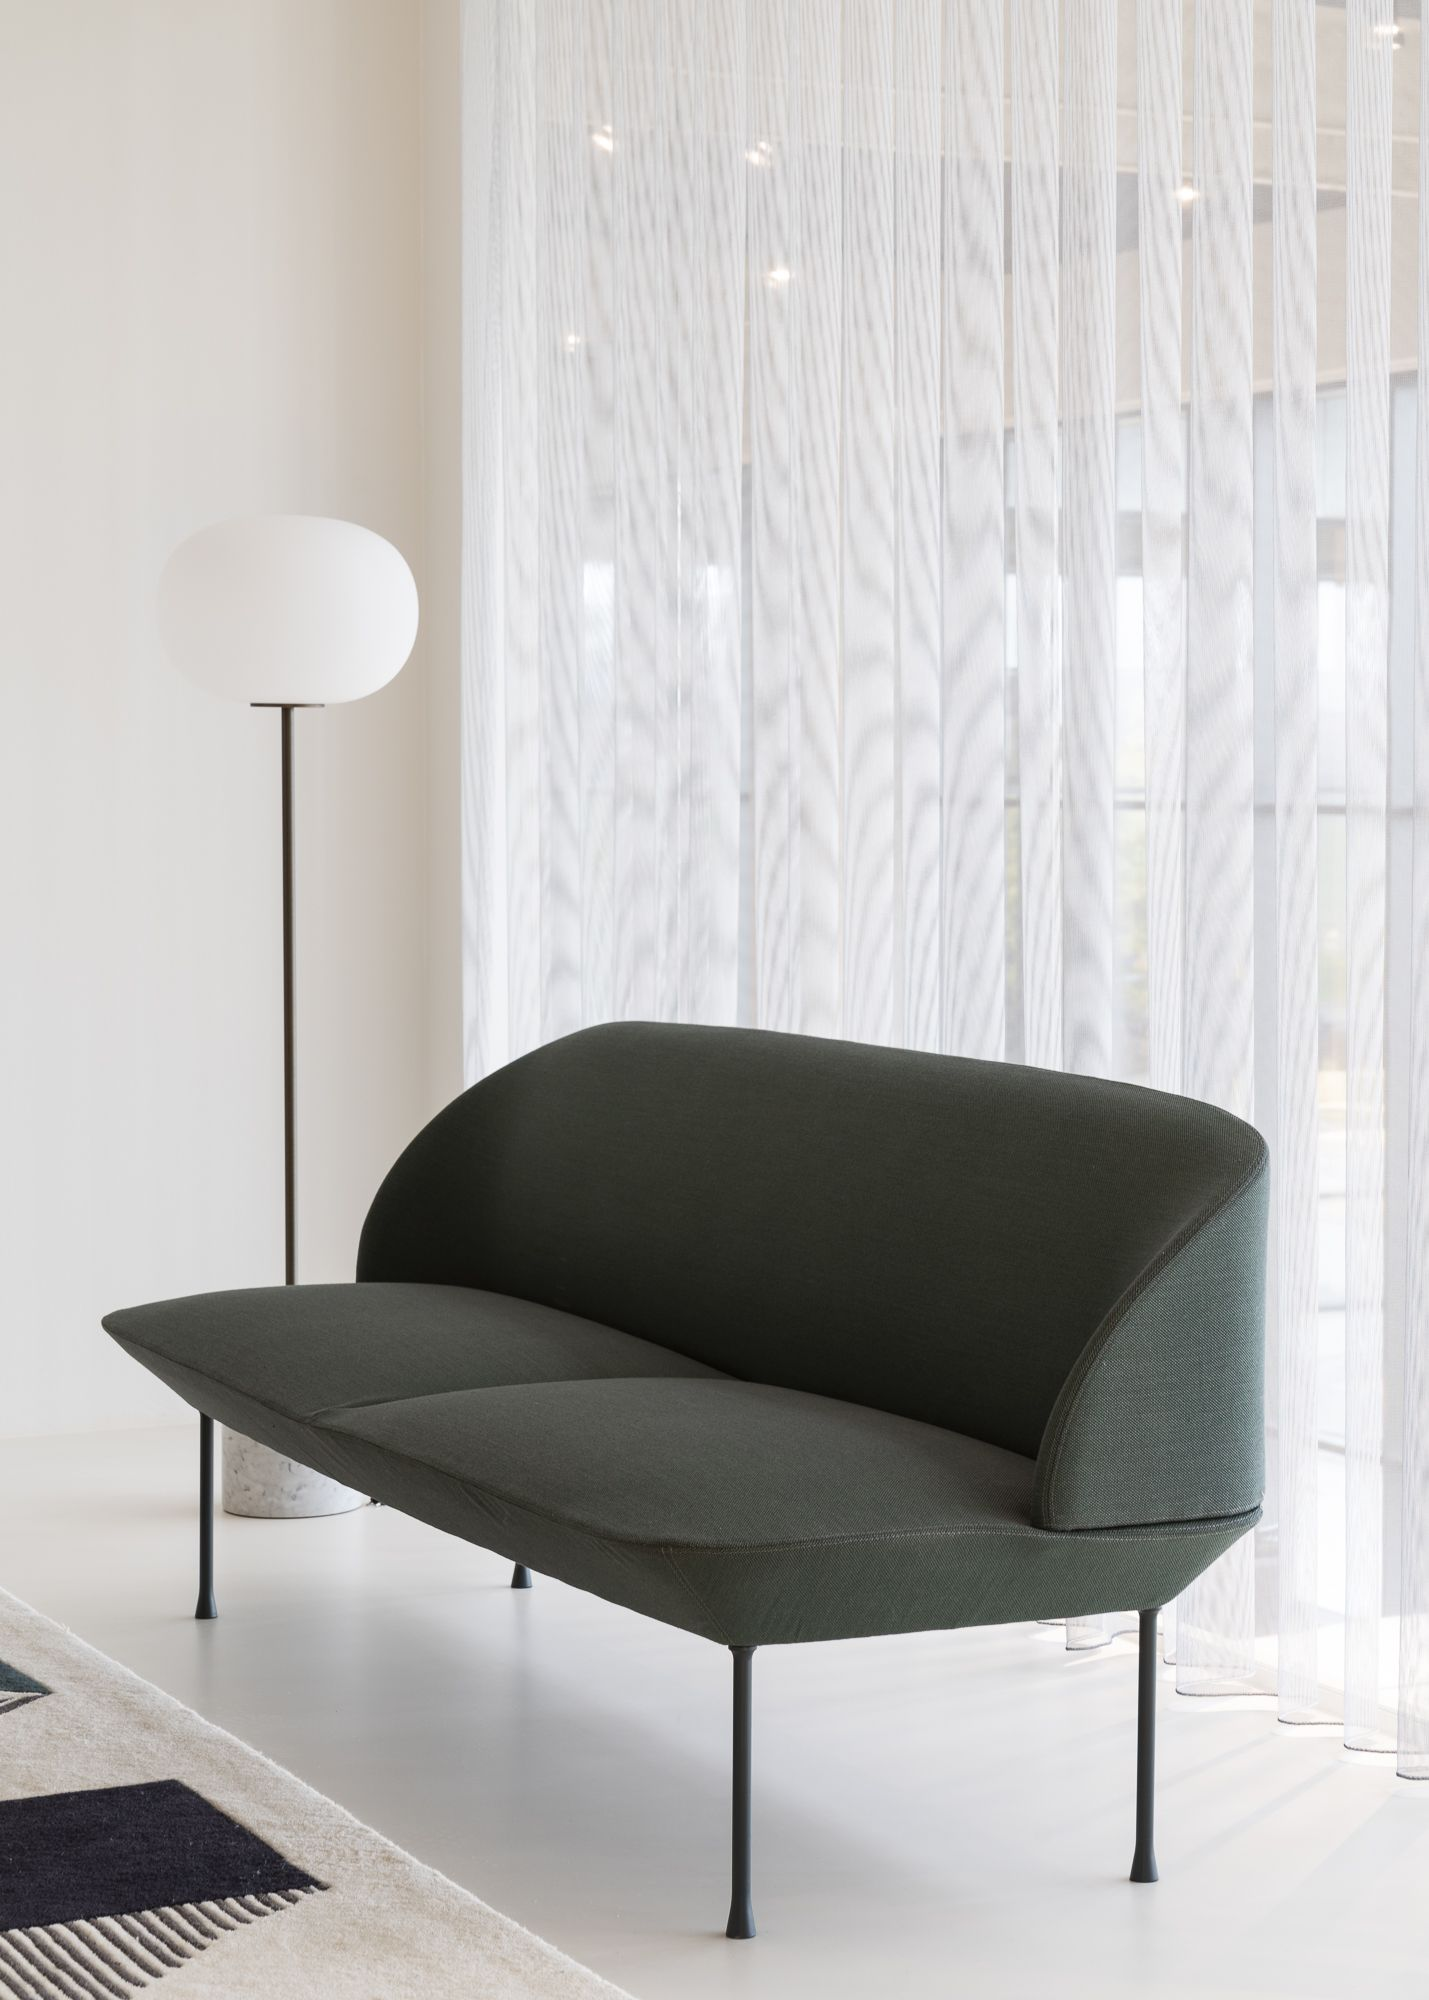 Modern Office Space Inspiration At Ambiente Denmark With Designs From Muuto The Oslo In 2020 With Images Furniture Design Scandinavian Furniture Design Office Space Inspiration